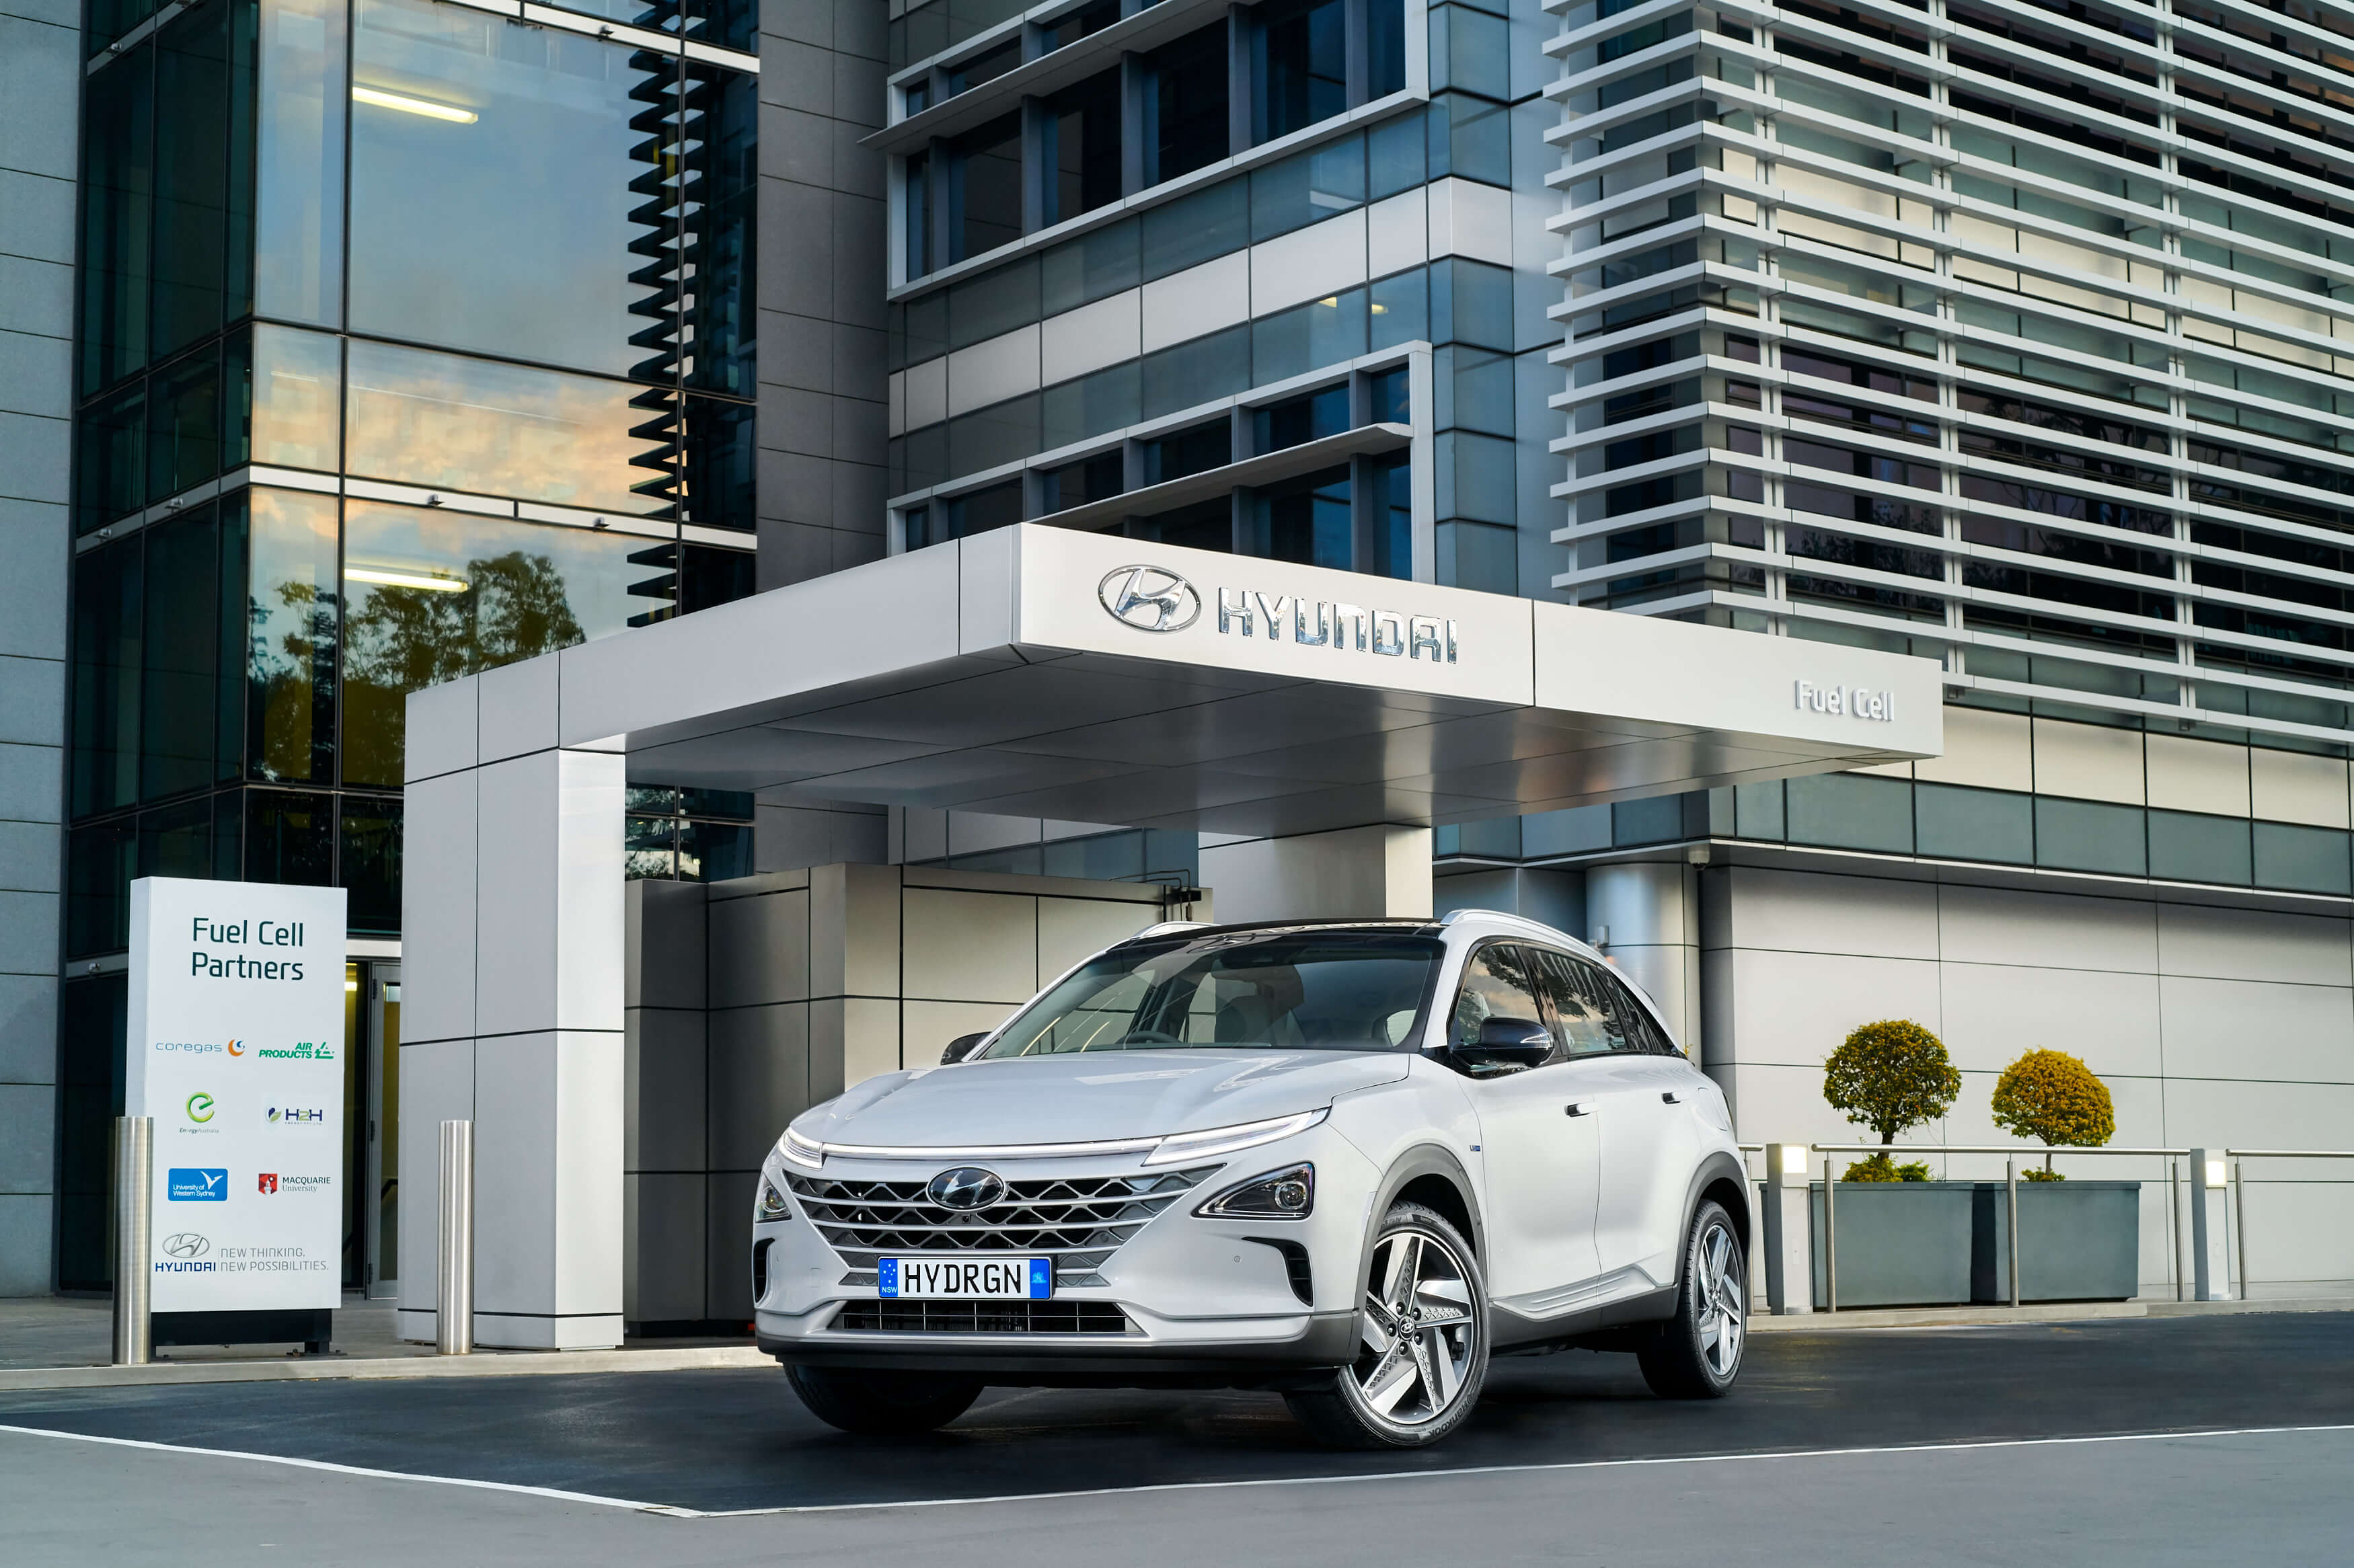 Hyundai Nexo Fuel Cell Car Parked at Hyundai